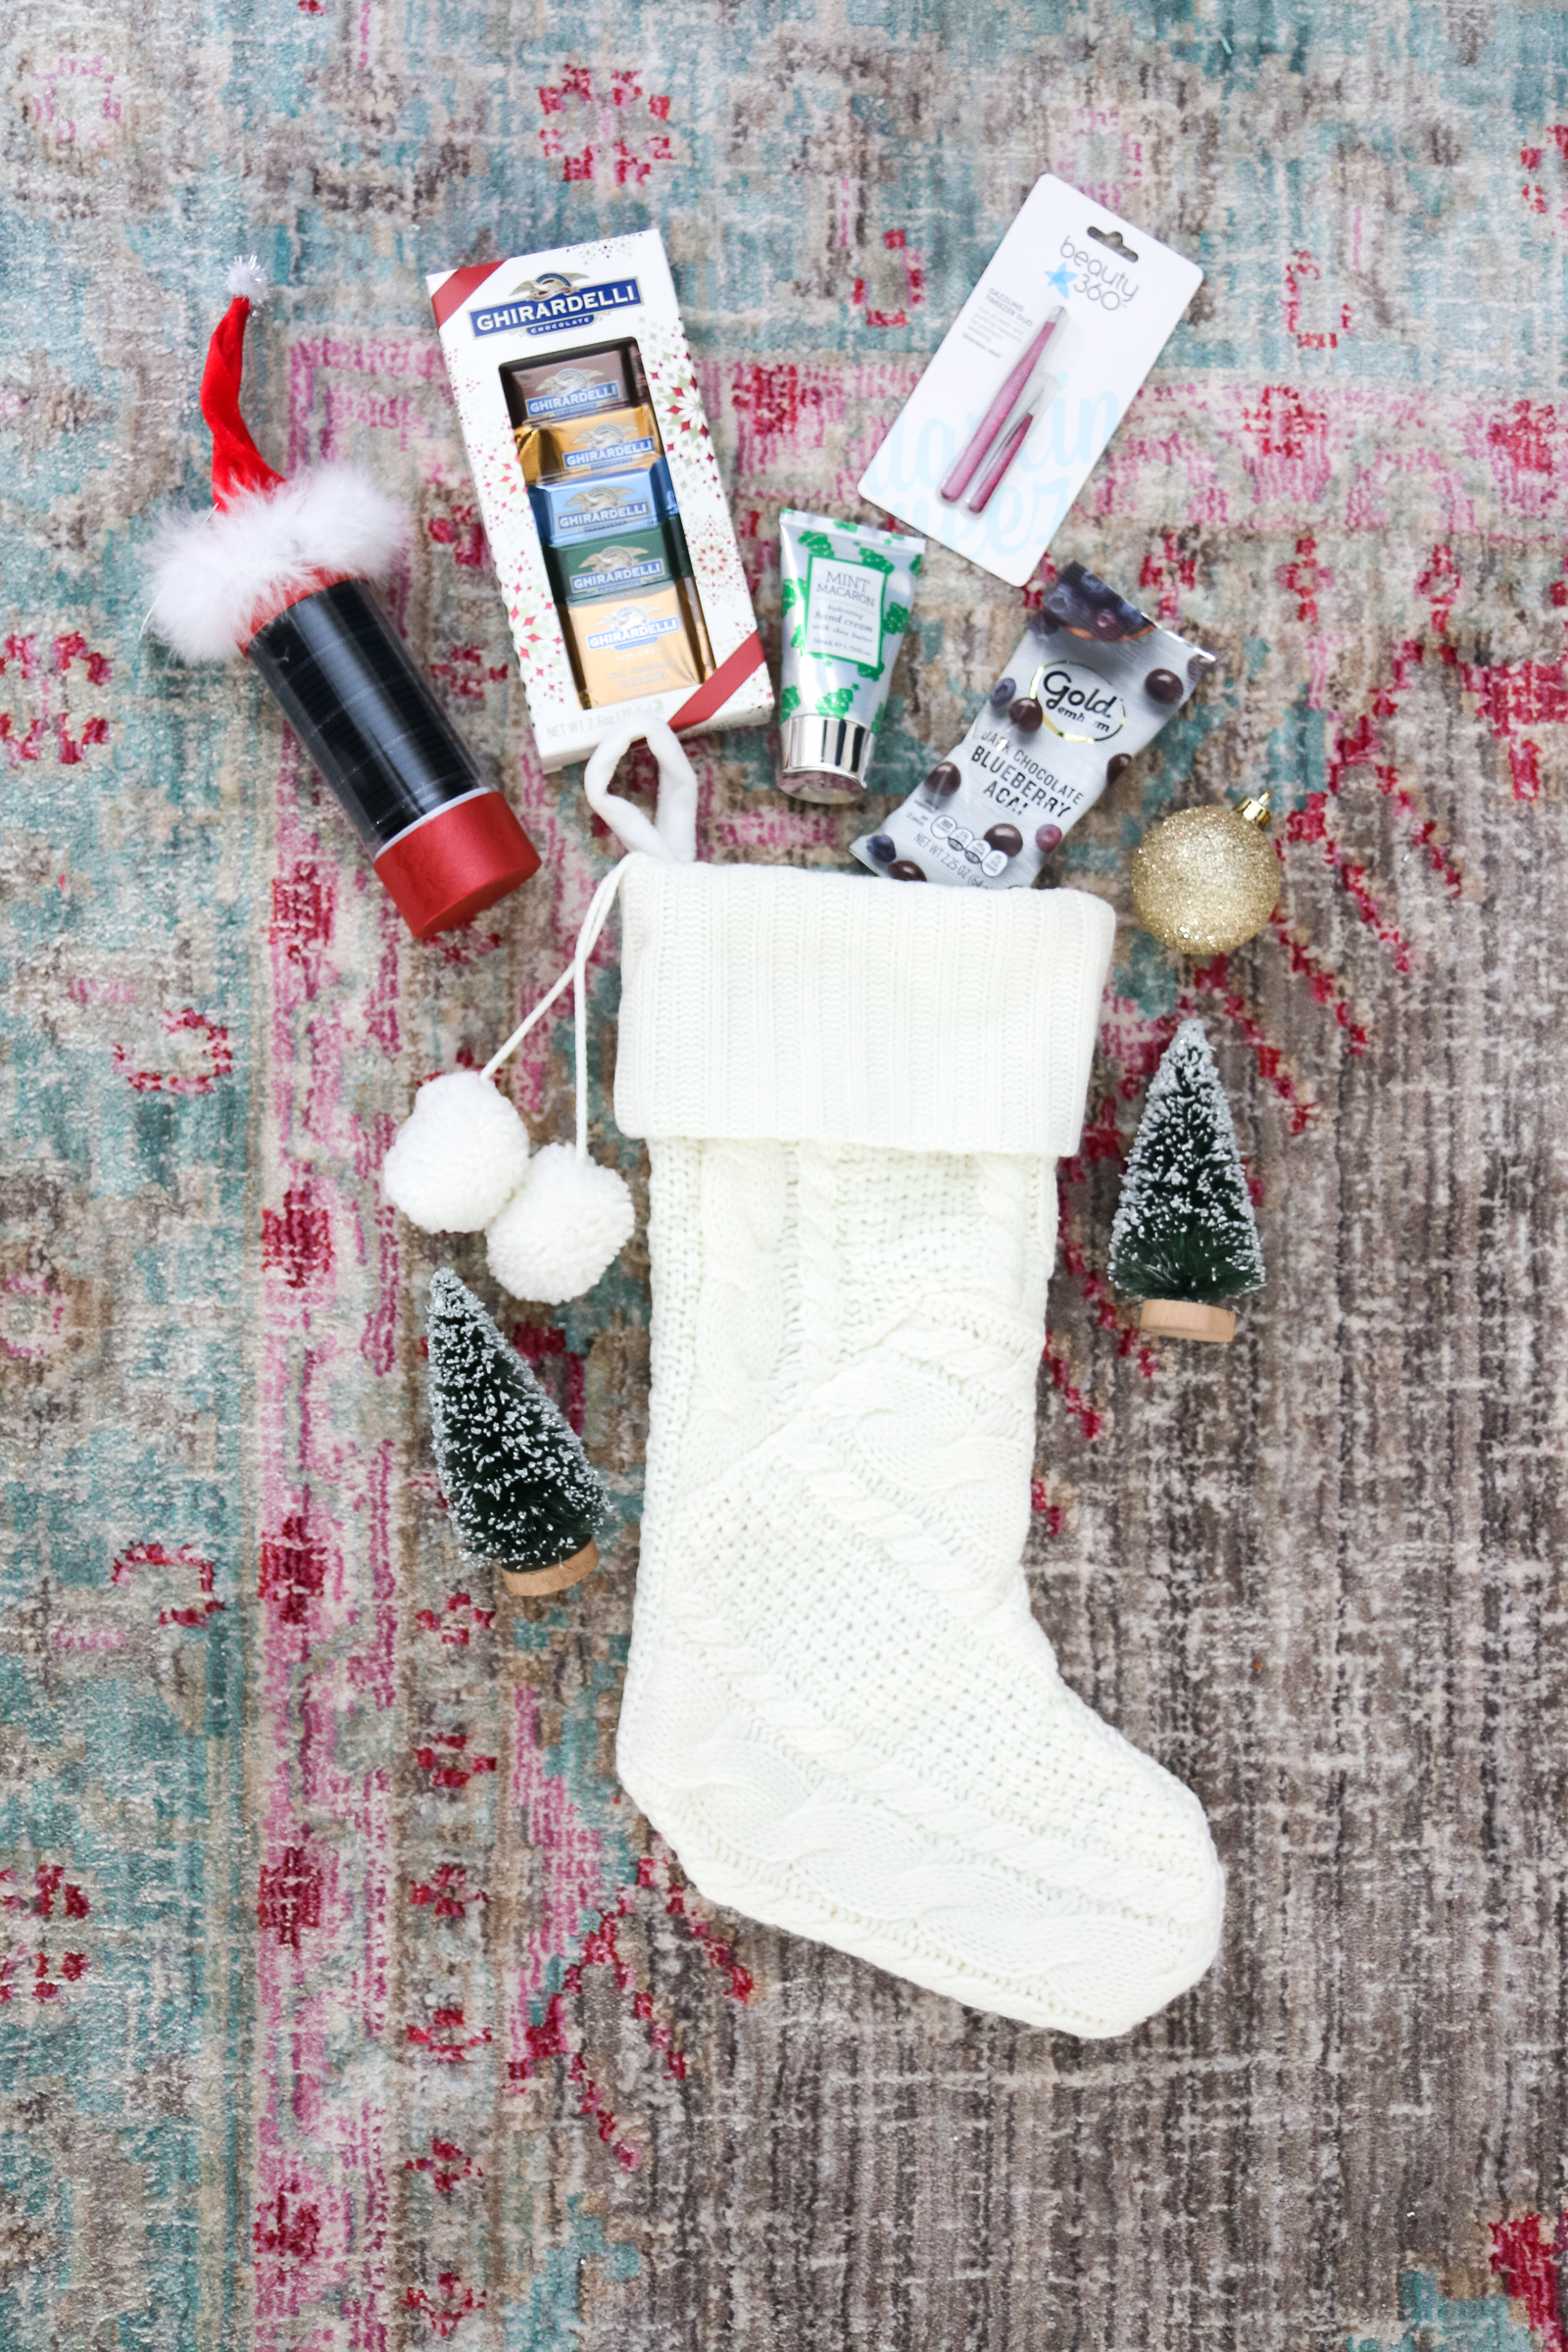 Holiday Stocking Stuffers For The Family by popular Utah blogger Sandy A La Mode